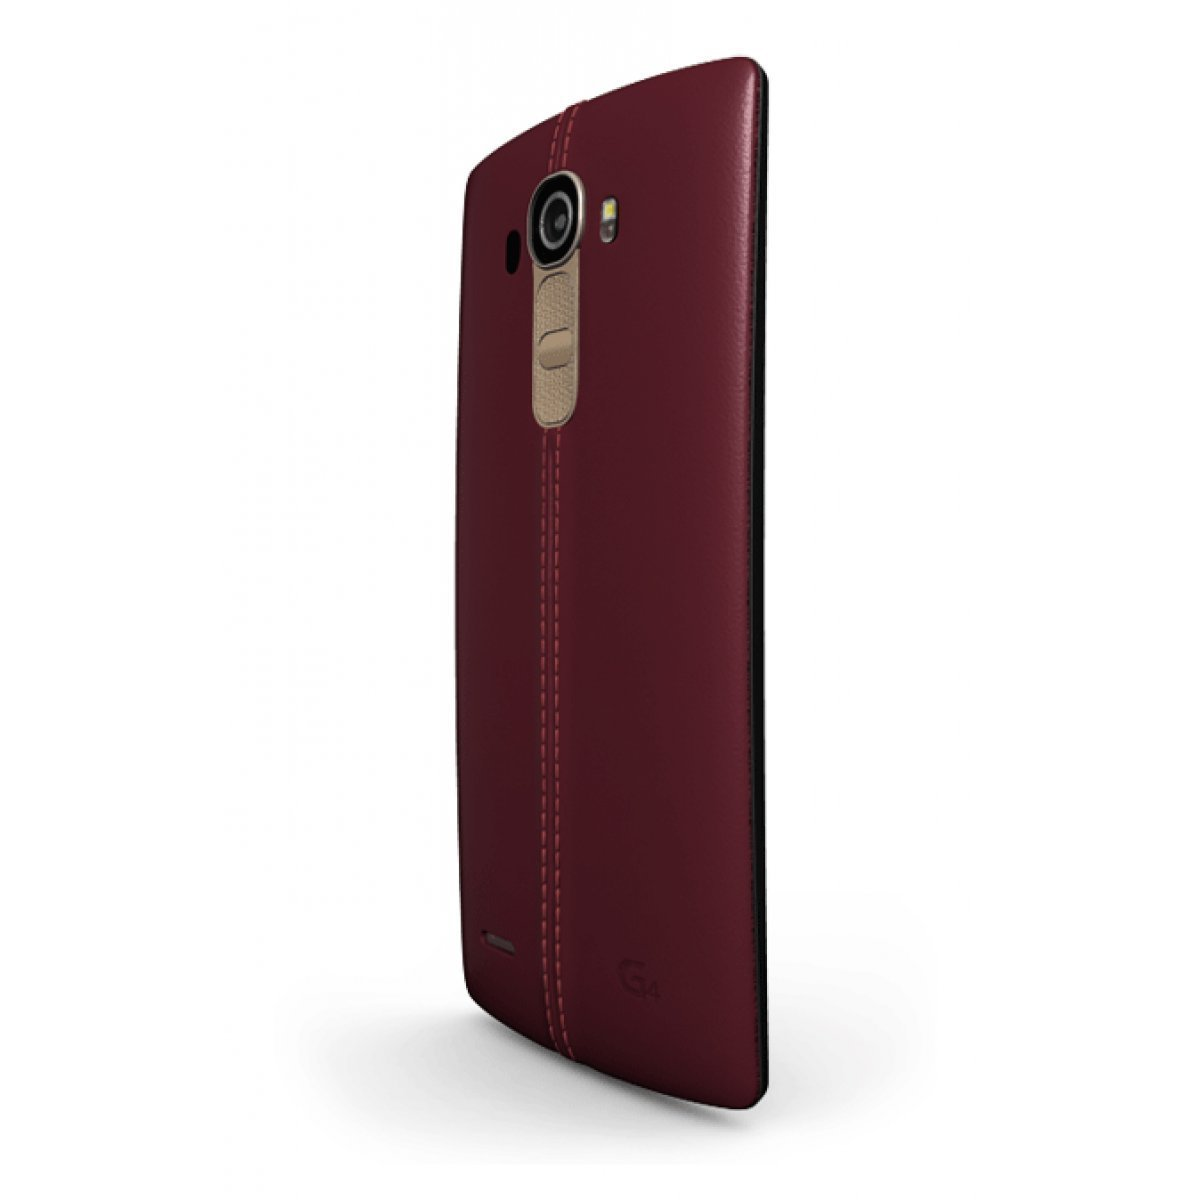 LG G4 32GB VS986 Android Smartphone